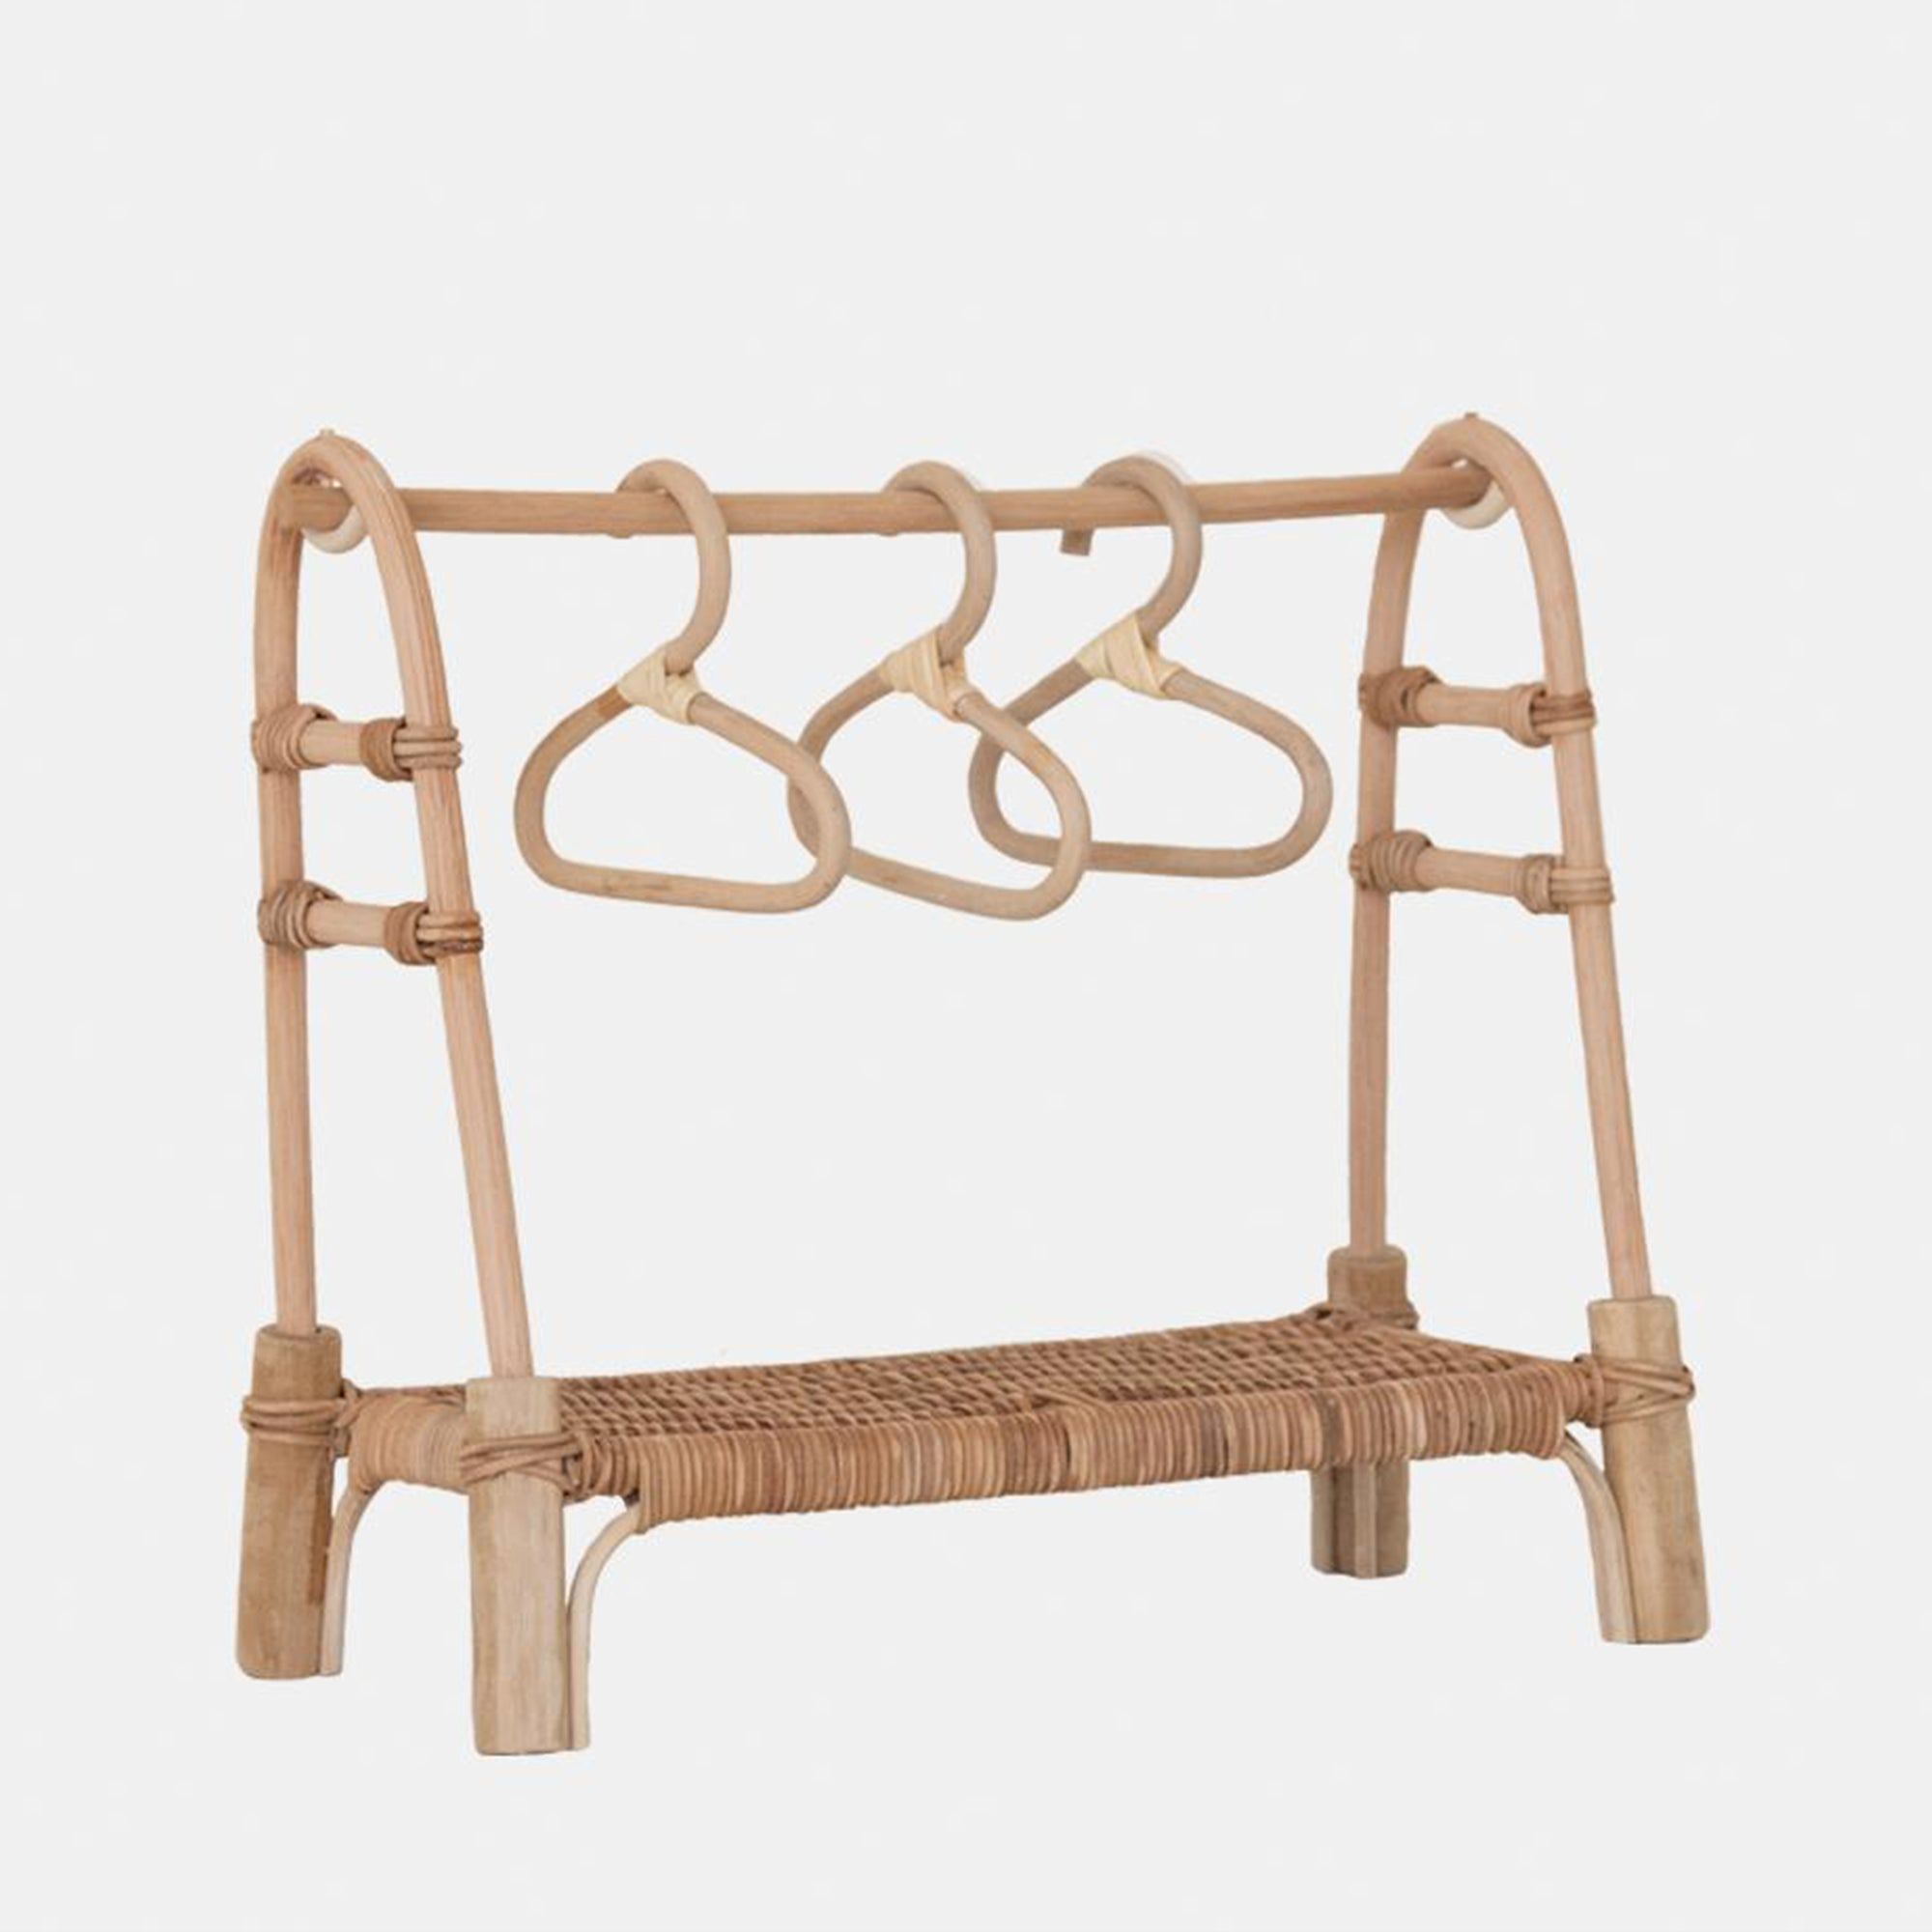 Olli Ella Dinkum Doll Clothes Rail - Scandi Minimal